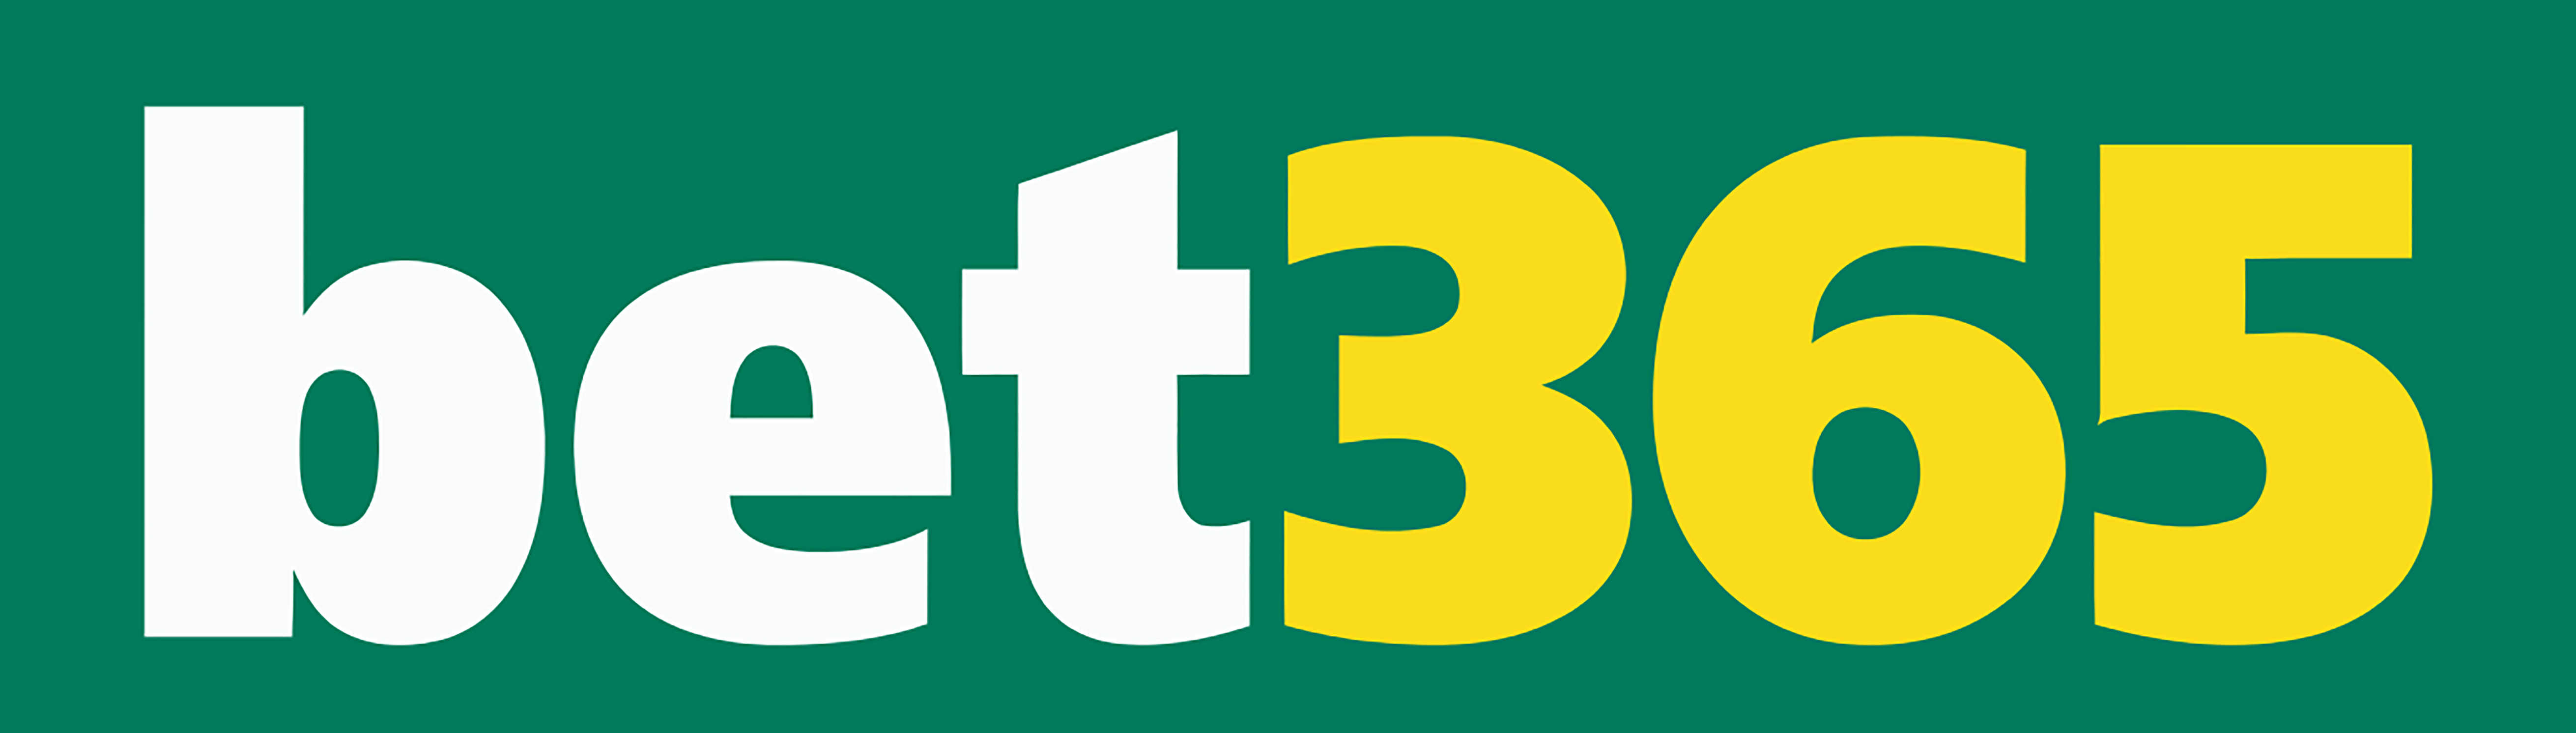 Bet365 Limited